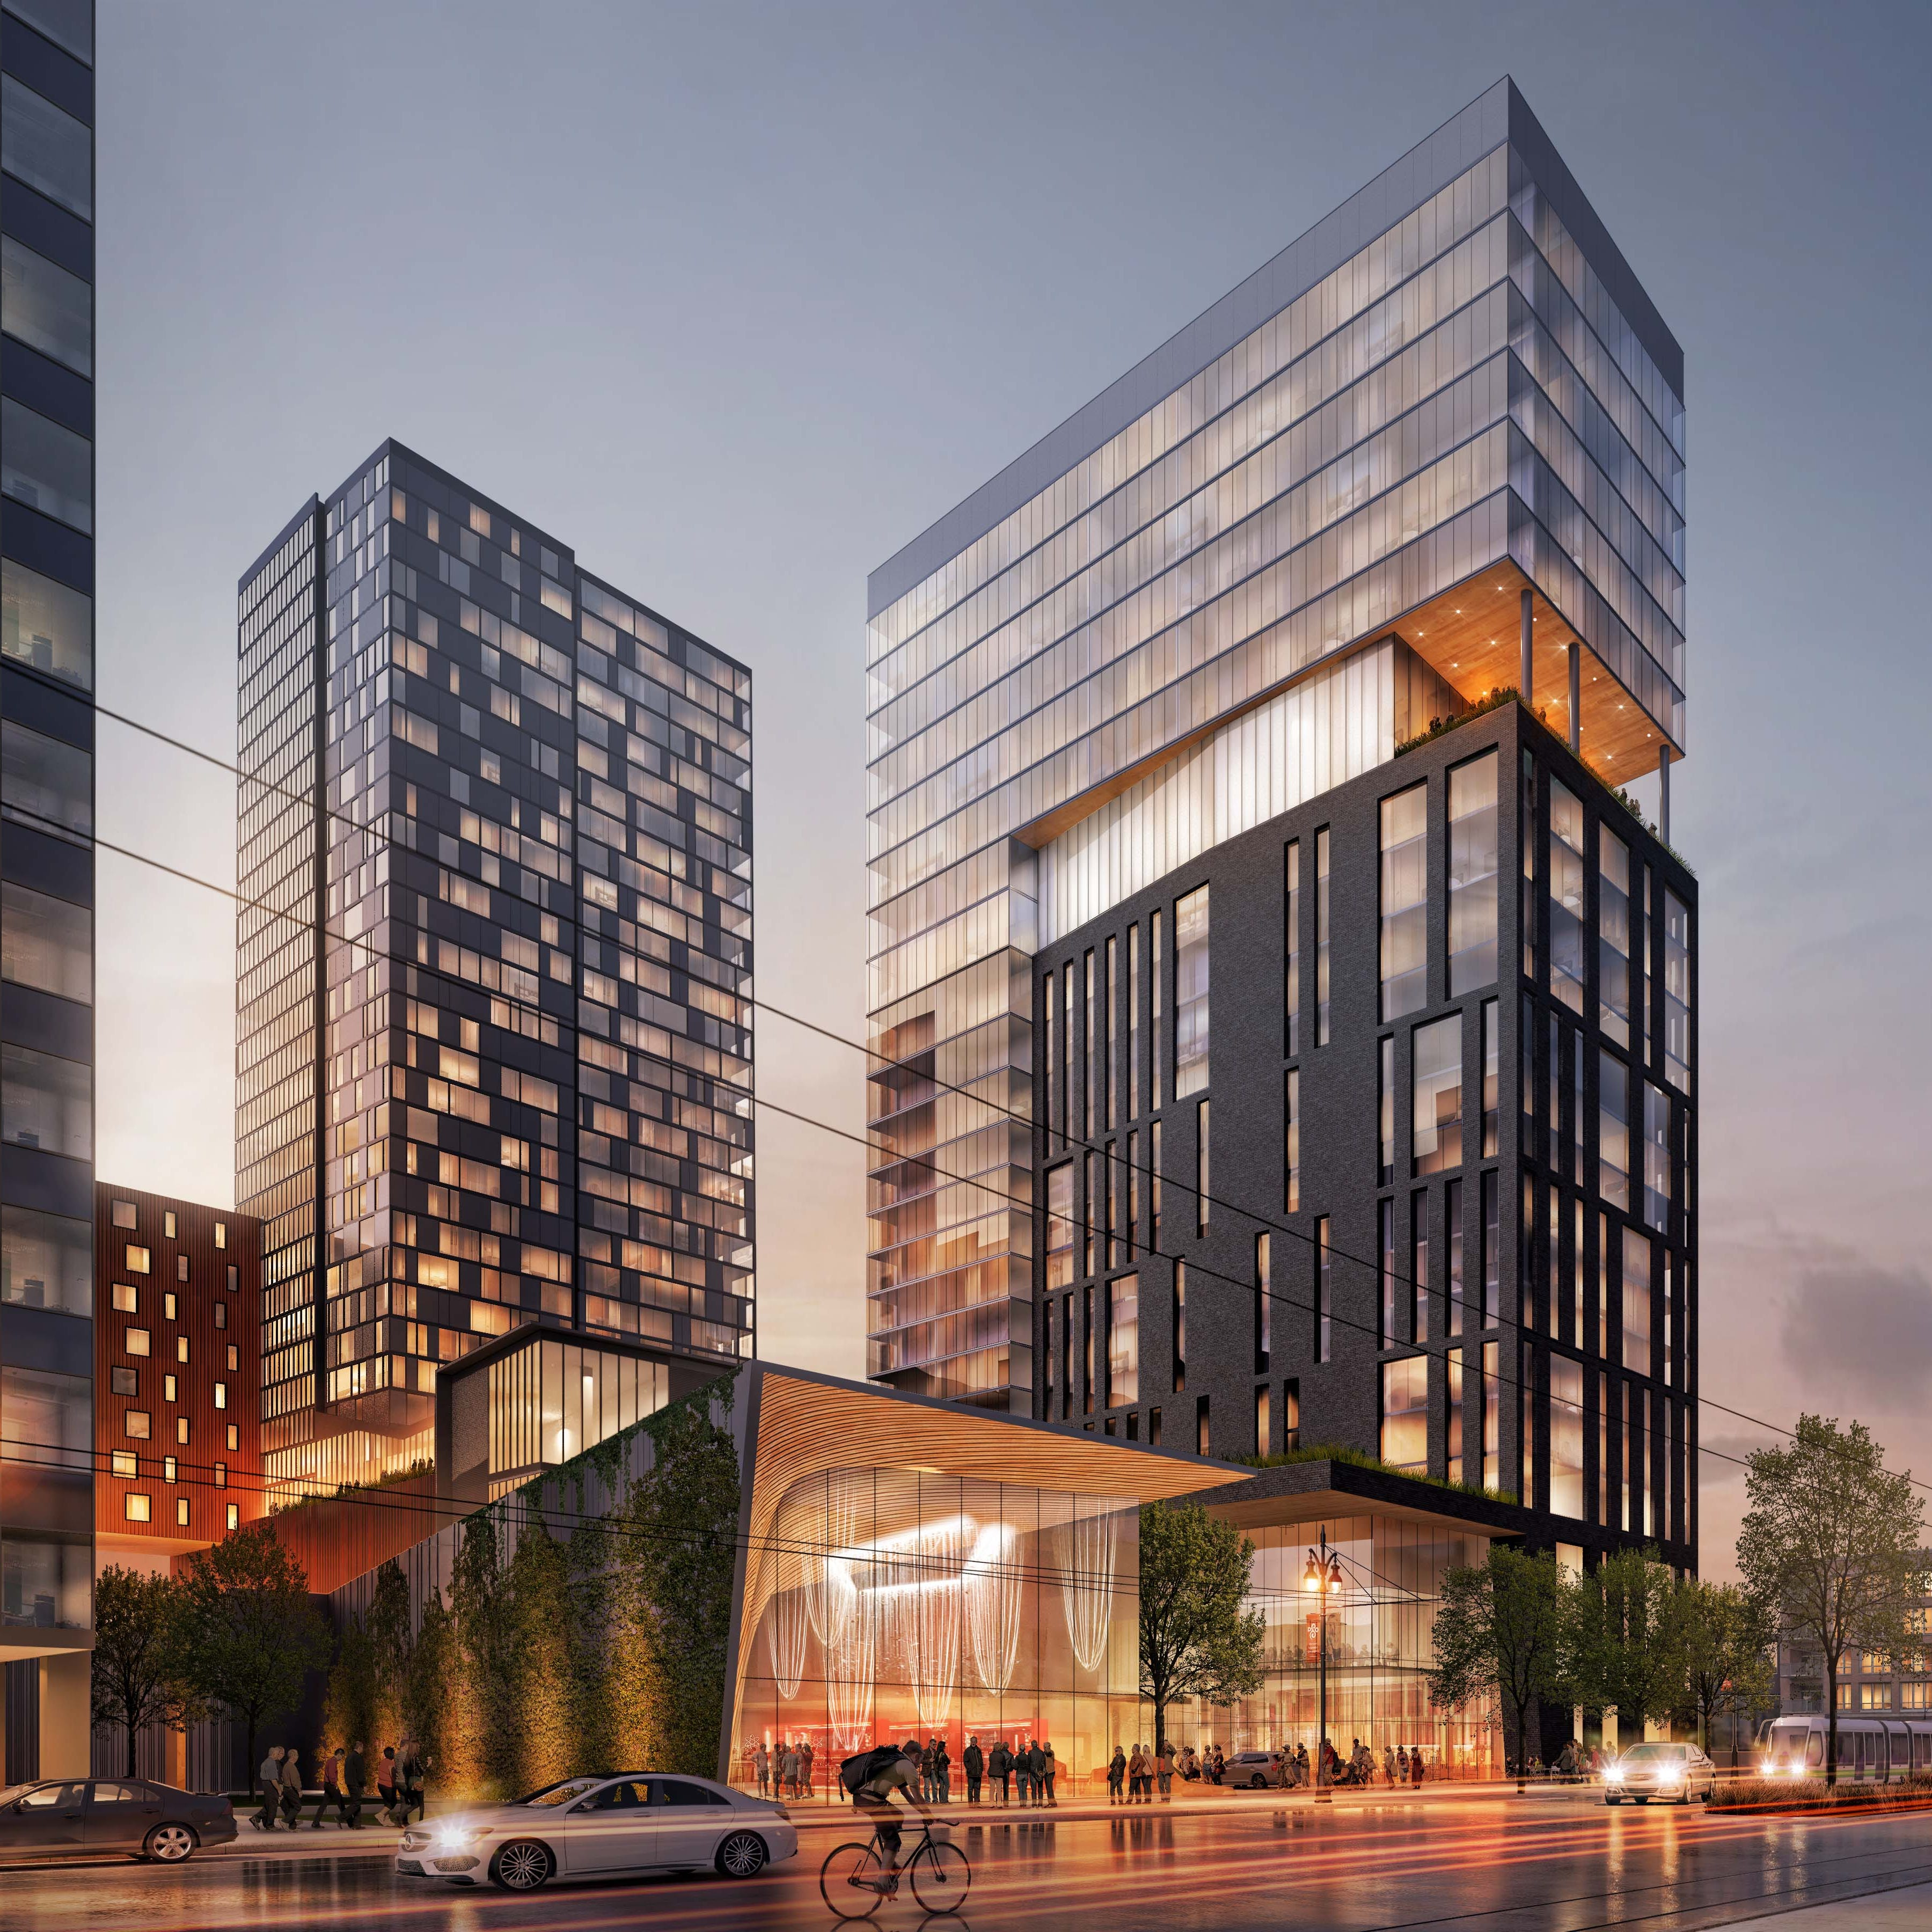 $310M luxury hotel, housing and retail project planned for Midtown